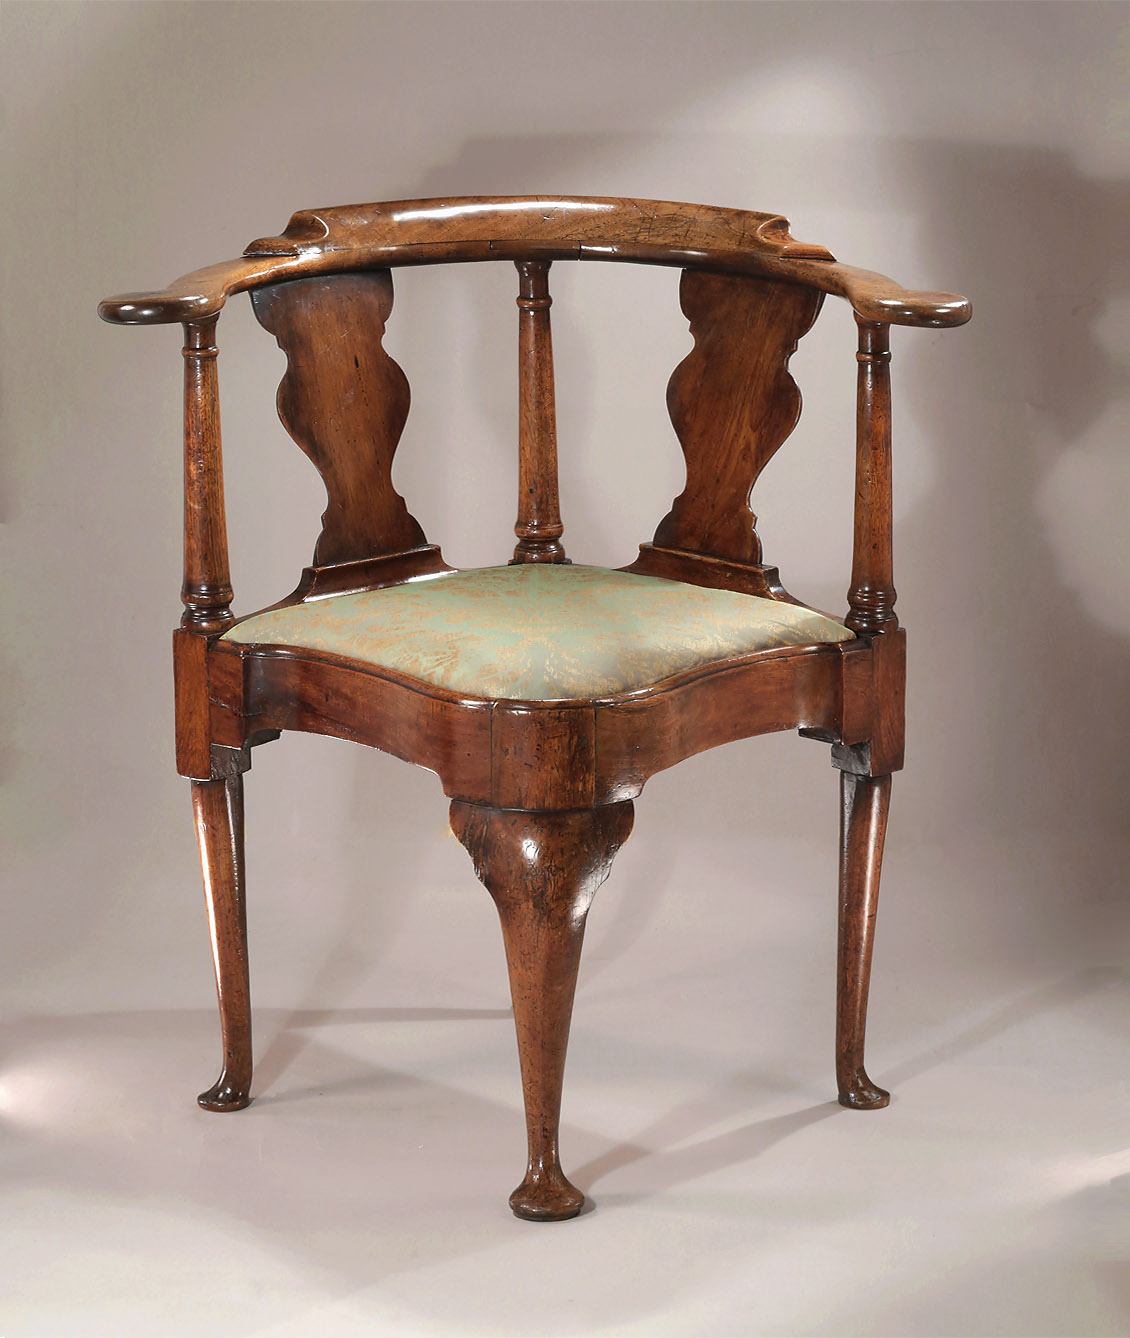 Queen Anne / George I Walnut Corner (Writing) Chair with Serpentine Seat, England, c1710-20